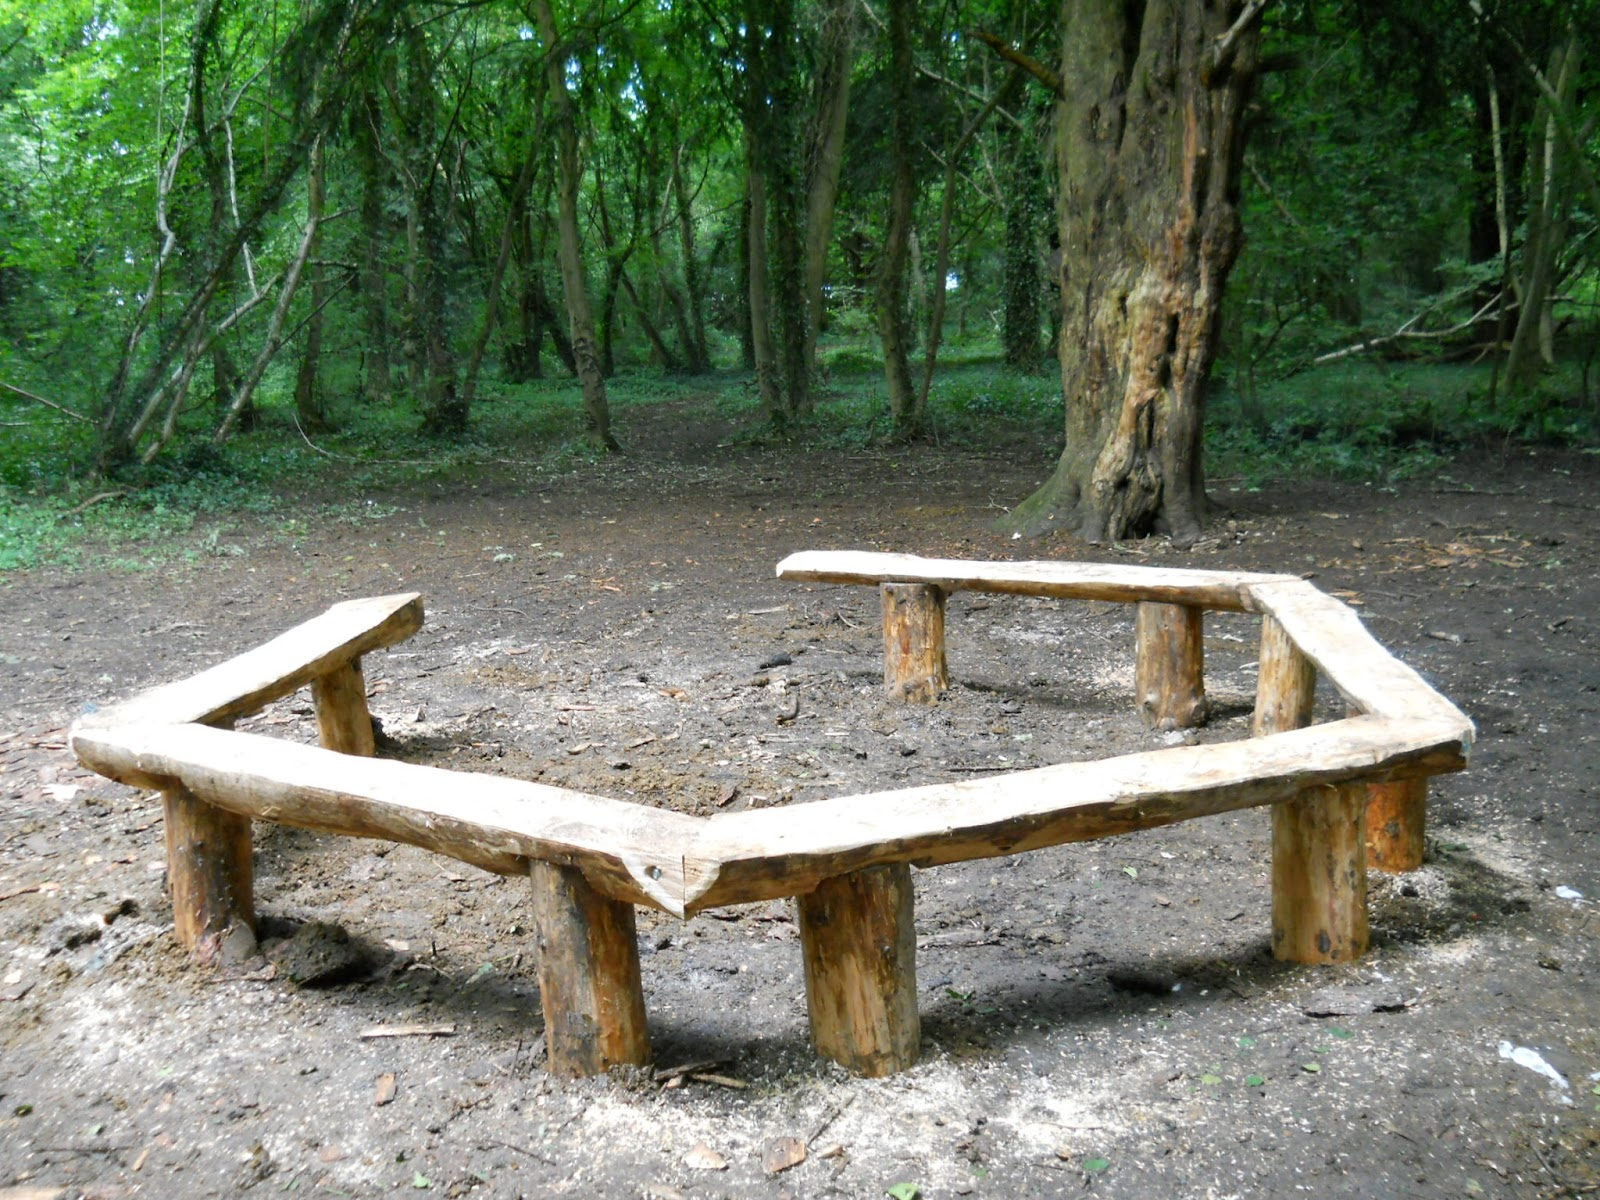 Benches at stoke park lockleaze carvings with stories a blog about woodcarving Fire pit benches